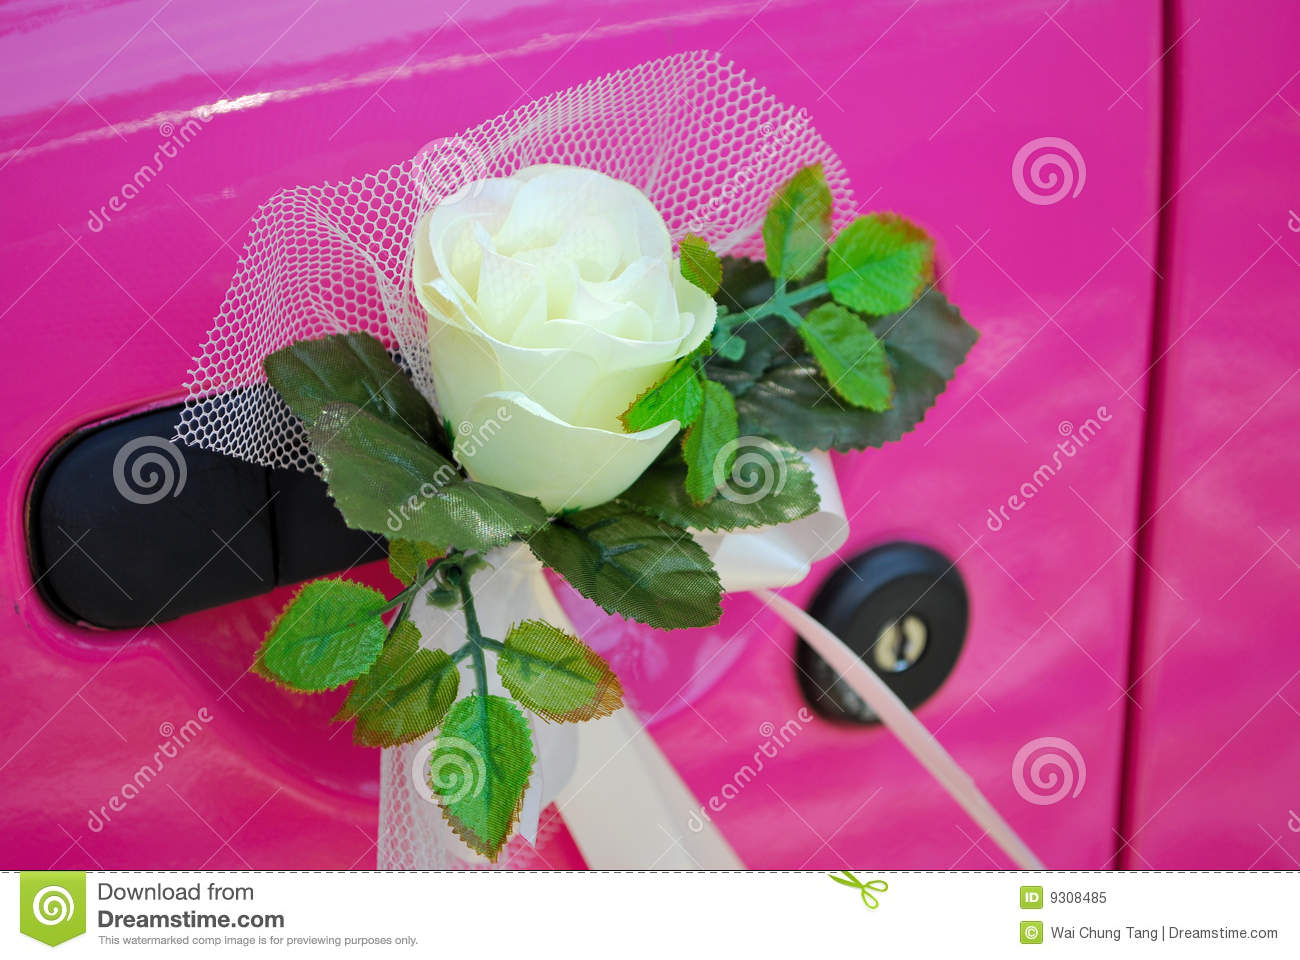 Pink Wedding Car Door With Flower Decoration Stock Image - Image of ...